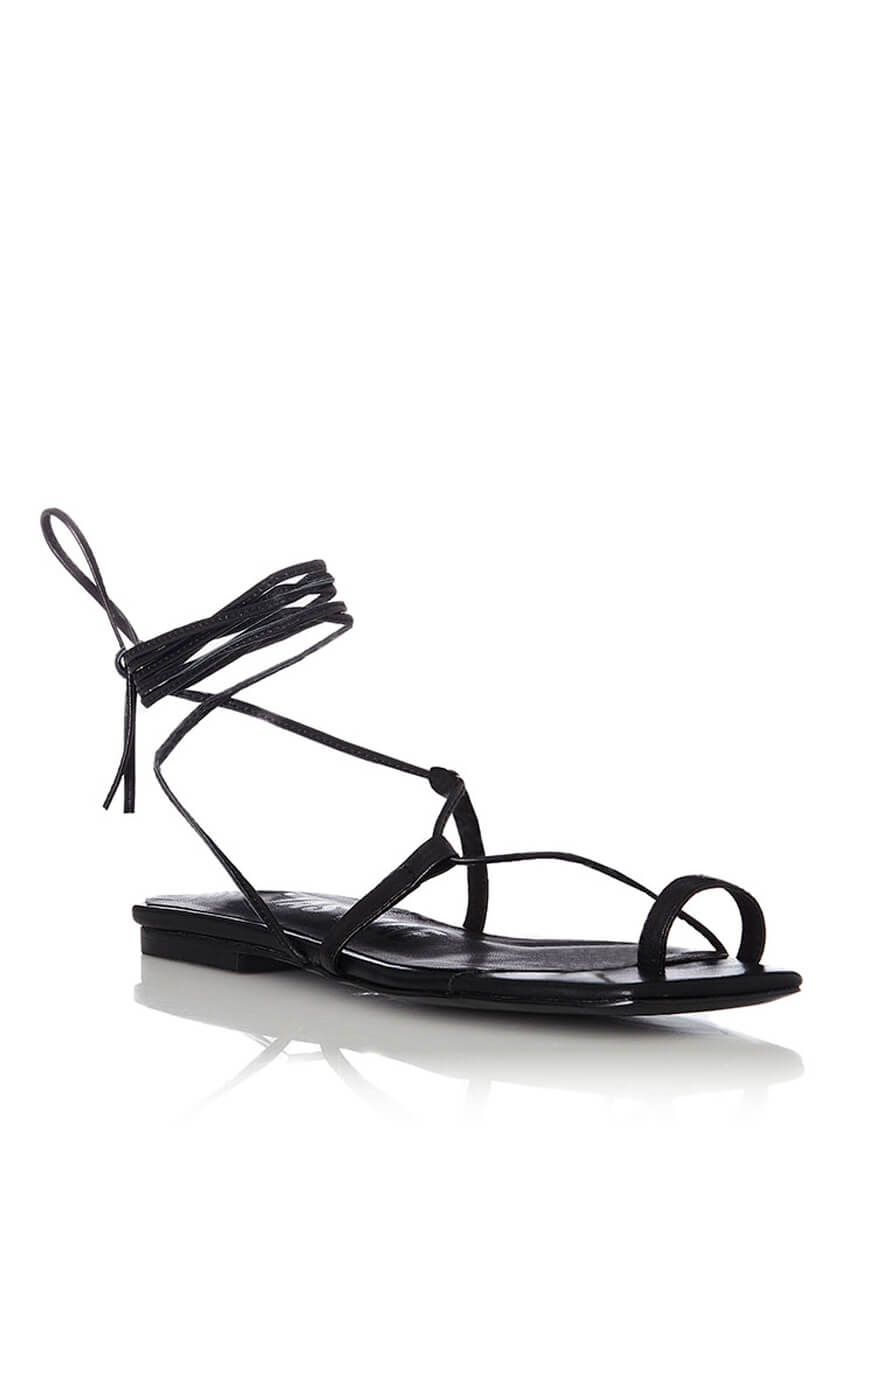 THE ANIKA SANDAL - BLACK